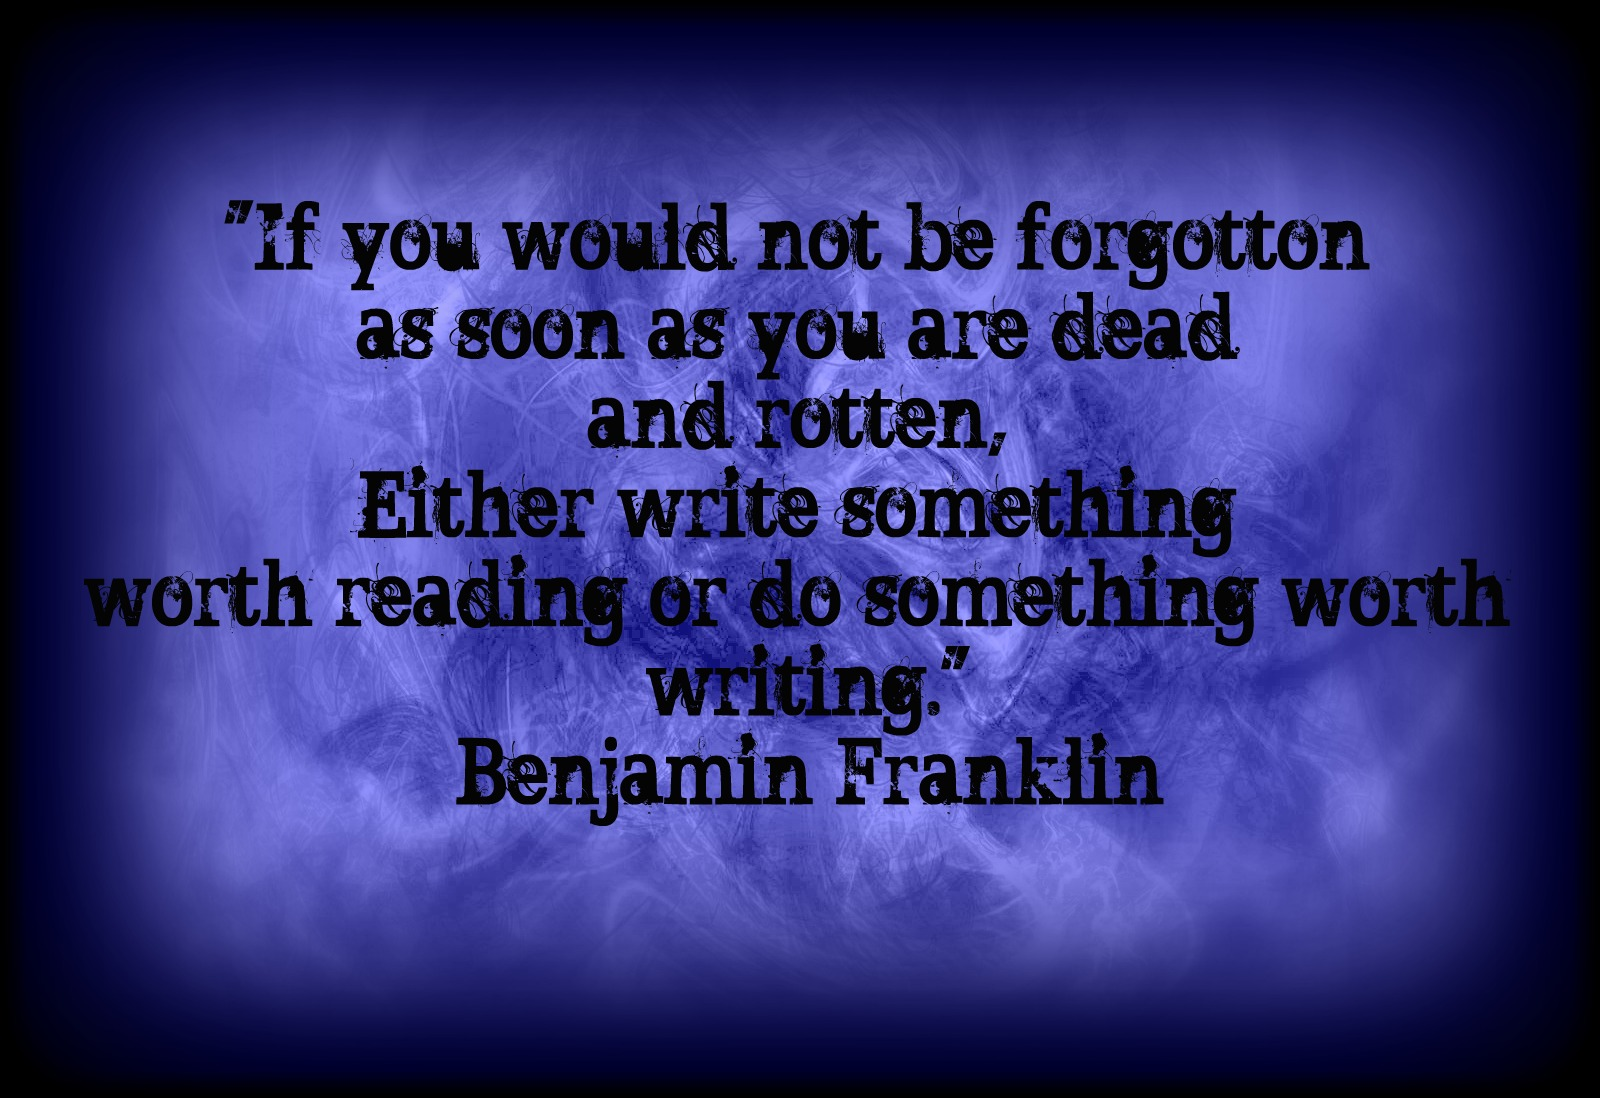 Franklyn quotes